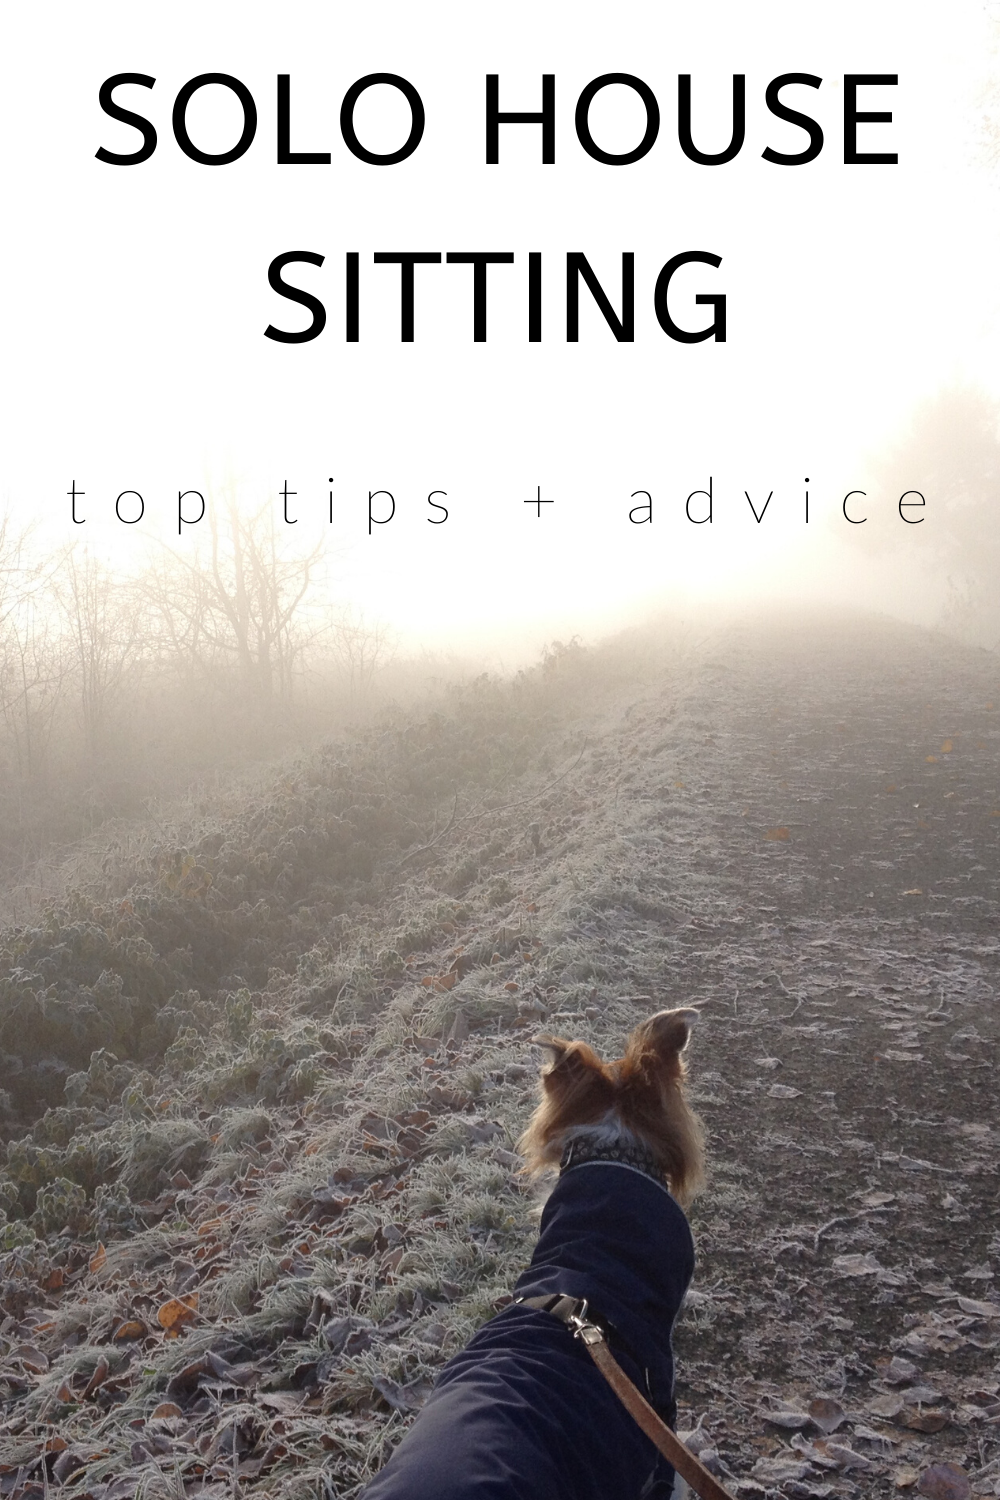 Want to try house sitting but afraid of house sitting alone? Read this interview by solo house sitter Ryan Patey. Read his top tips for overcoming challenges, best practices, the best house sits, and more!